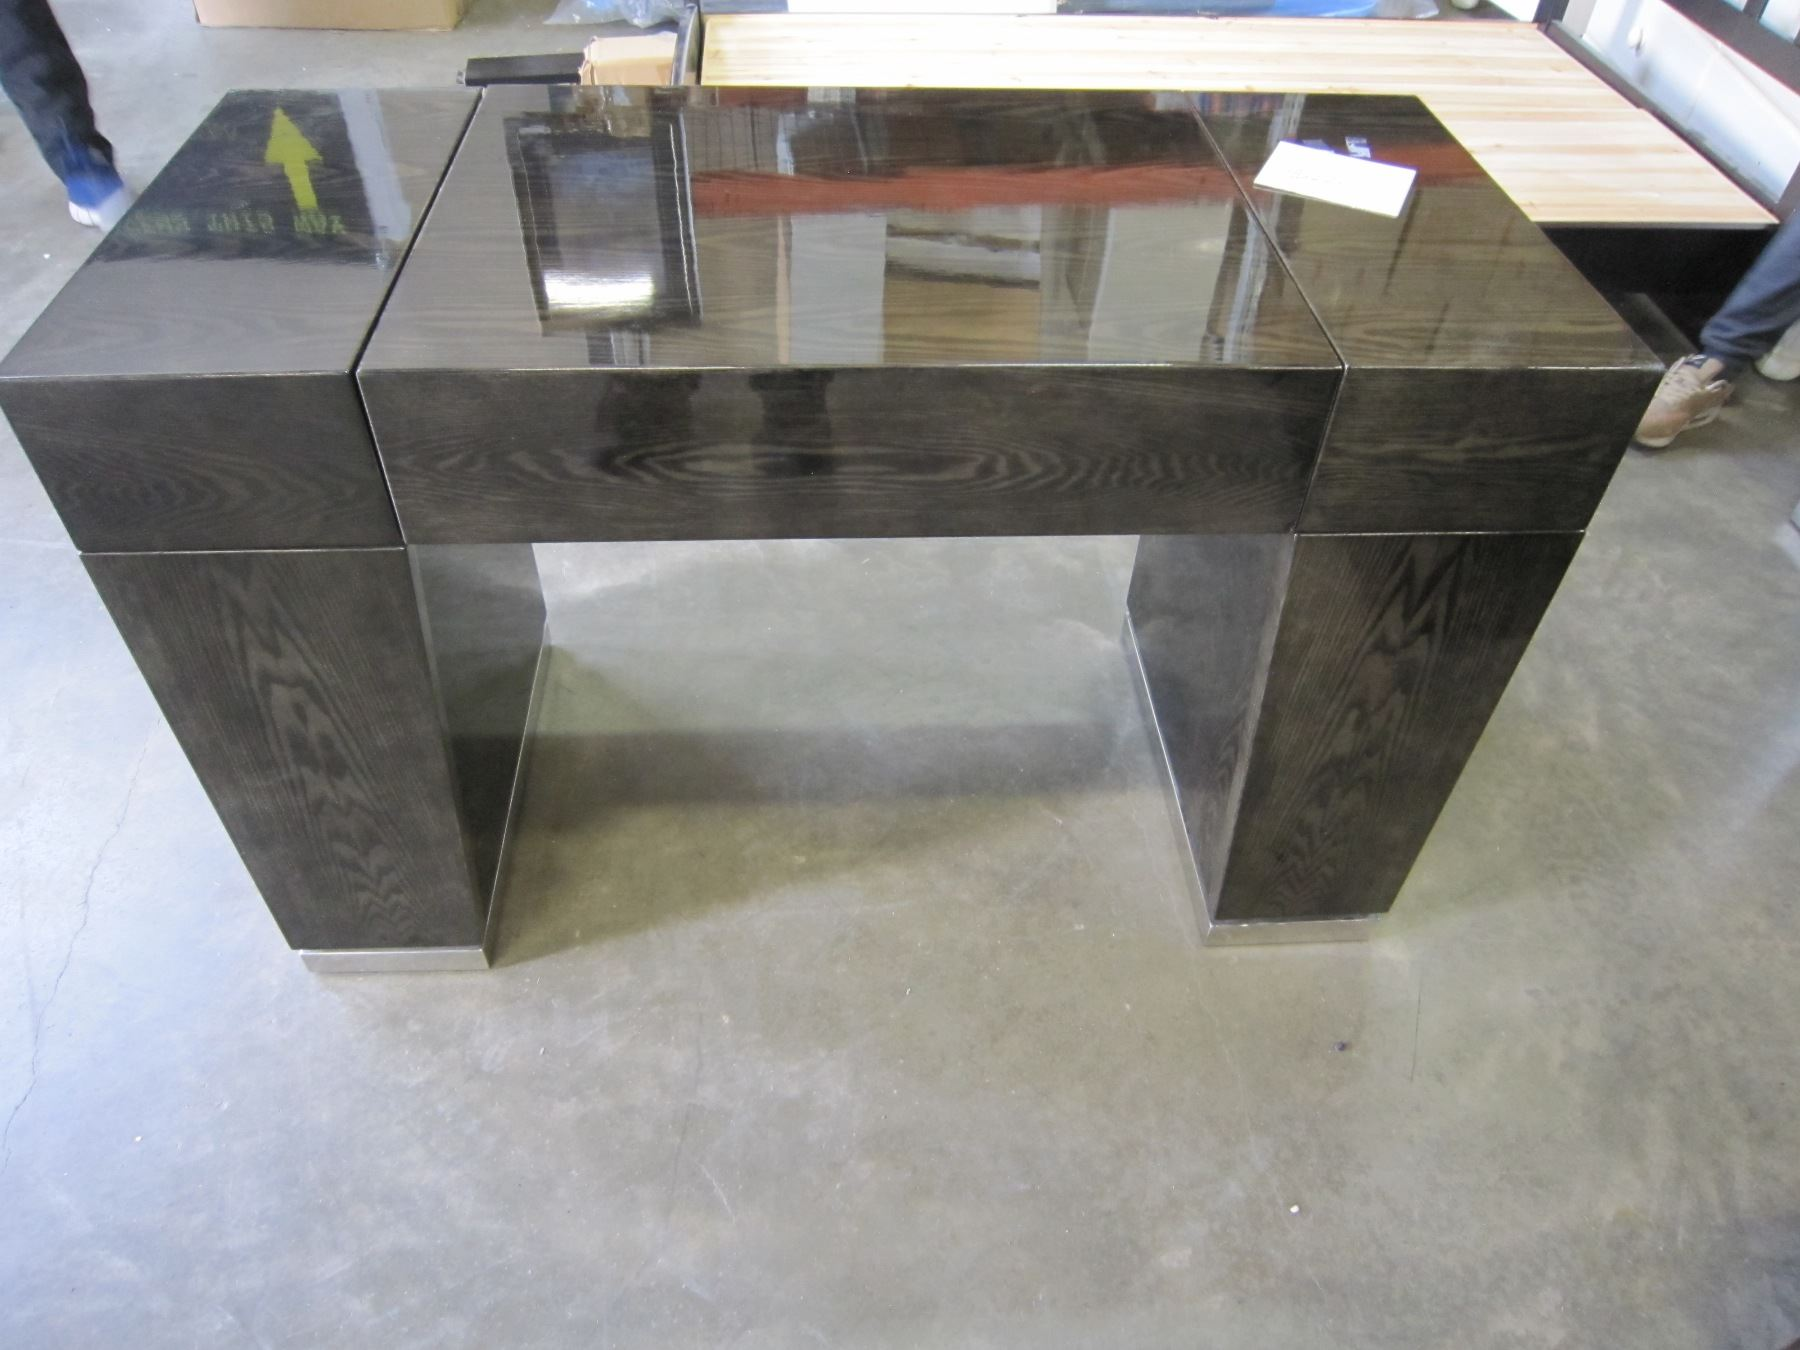 New Ultra Modern Dark Wood Grain Vanity Desk With Flip Up Mirror Retail